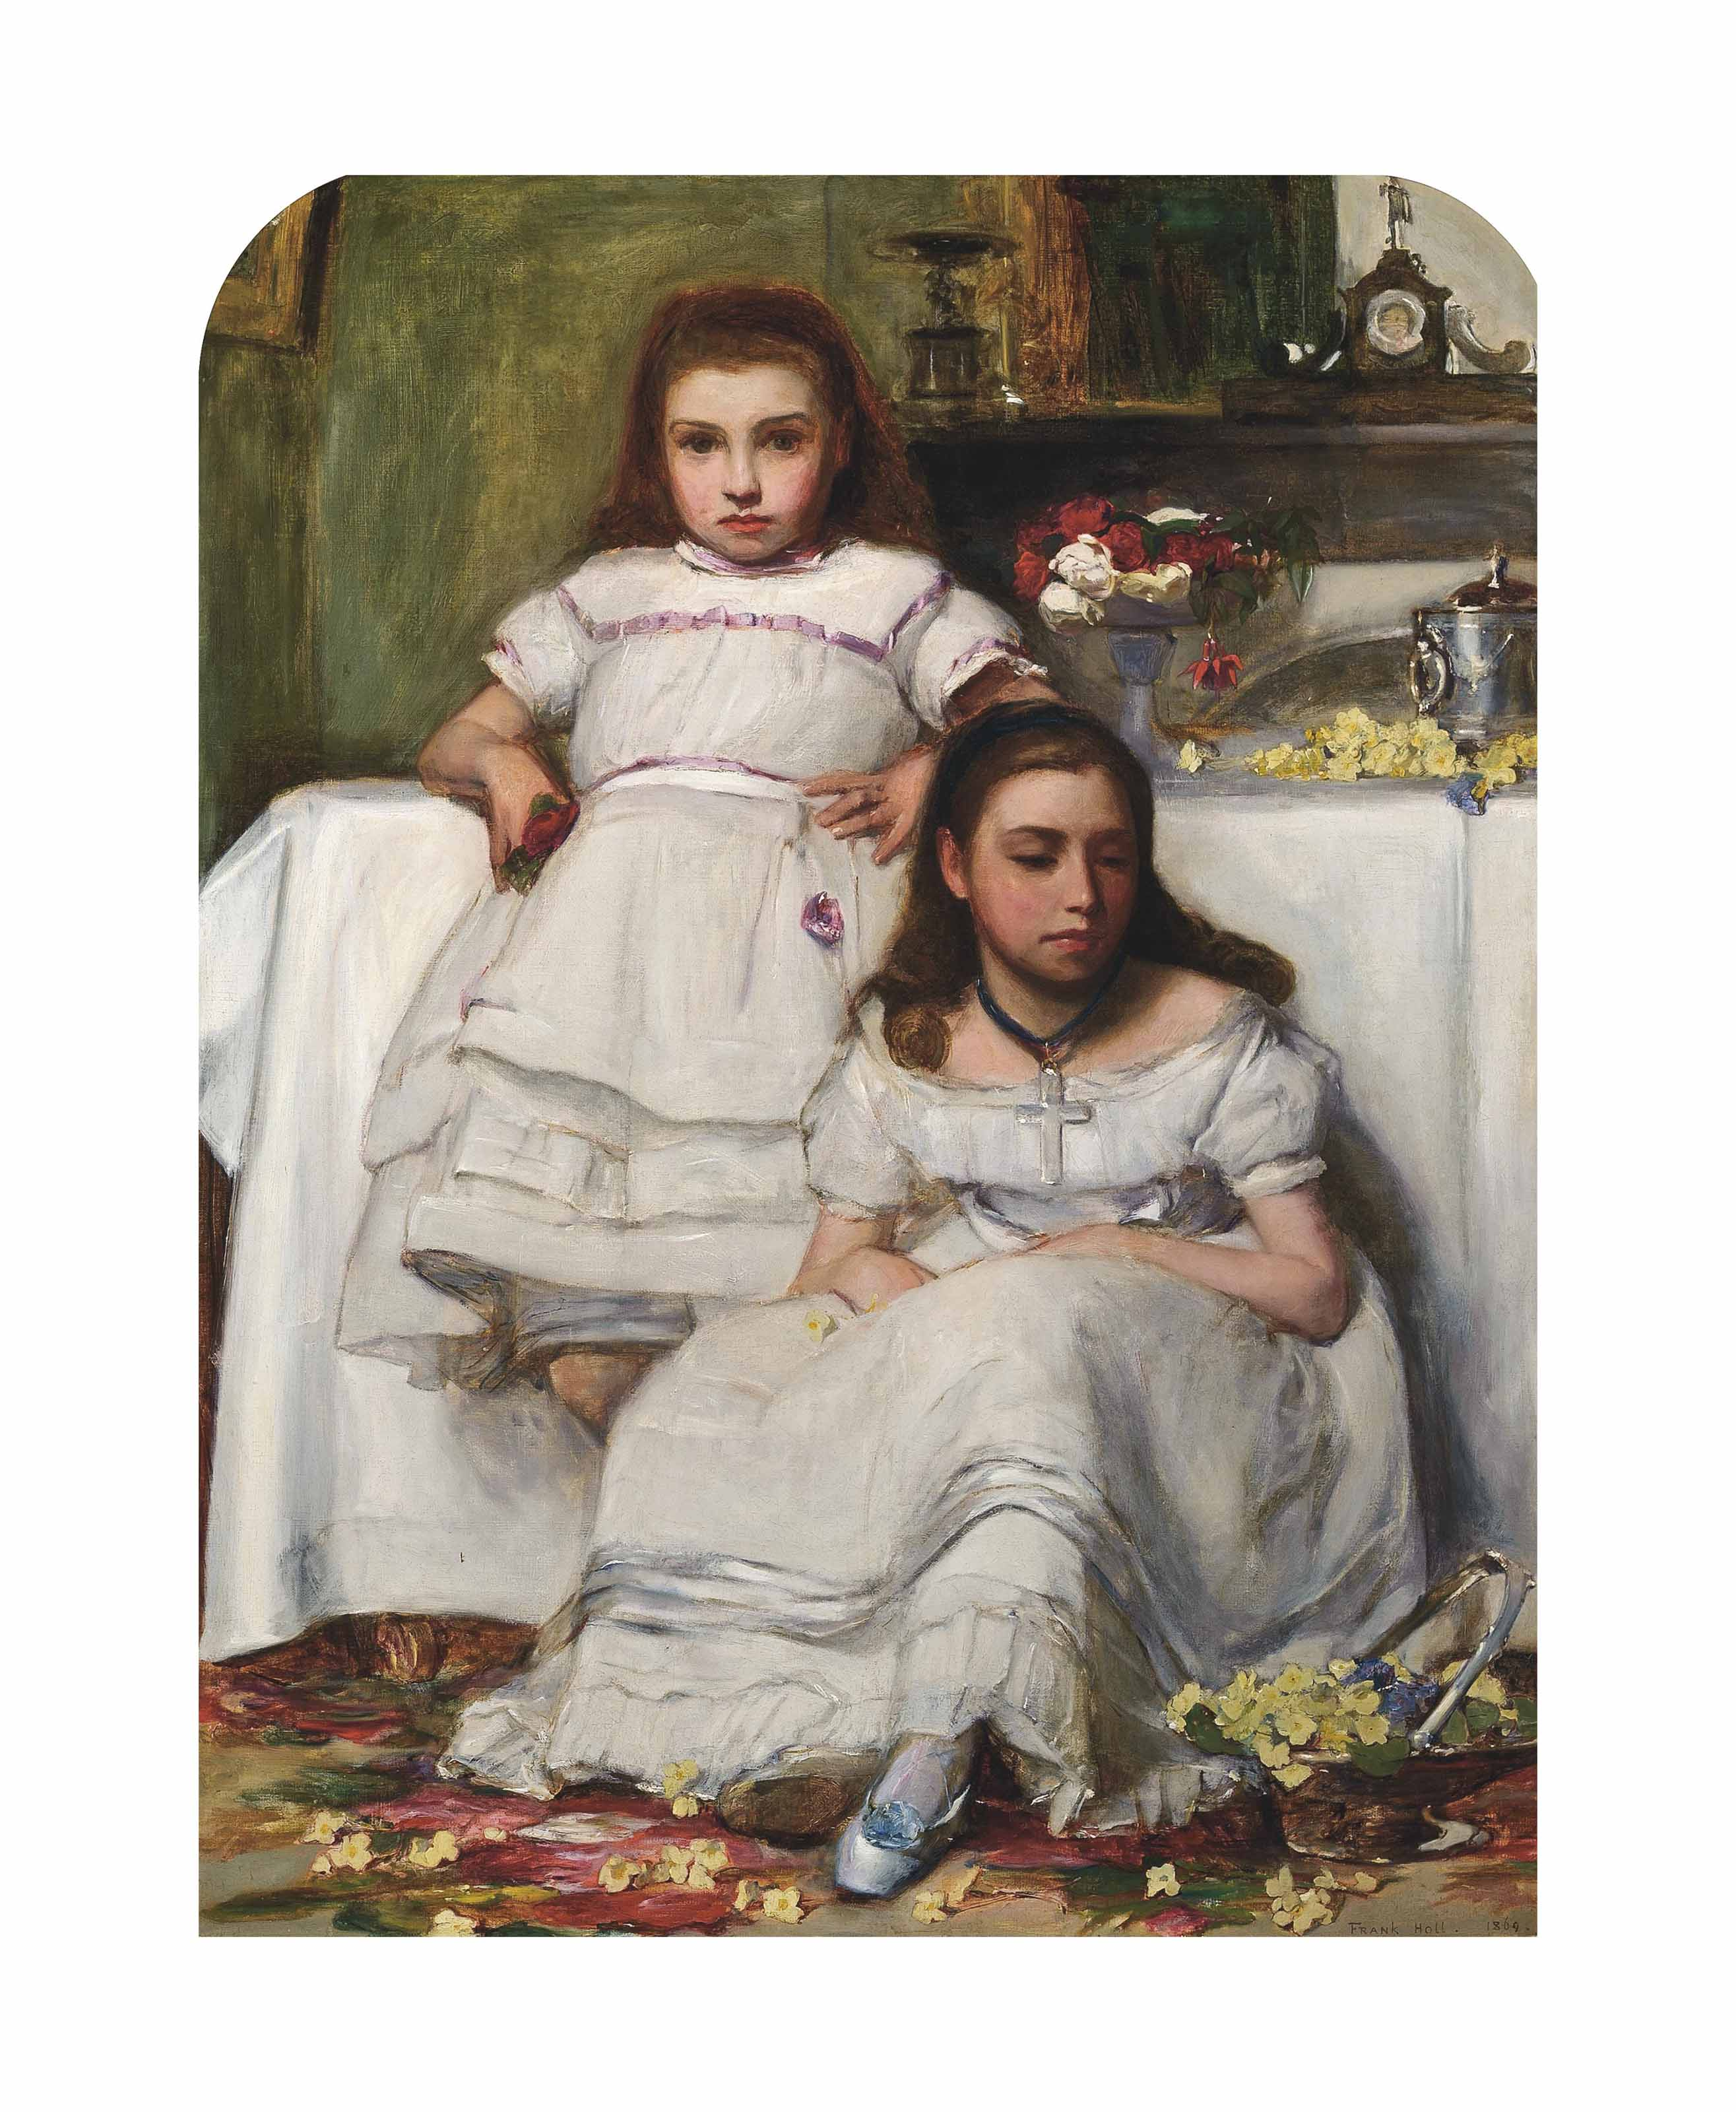 Portrait of two girls, dressed in white